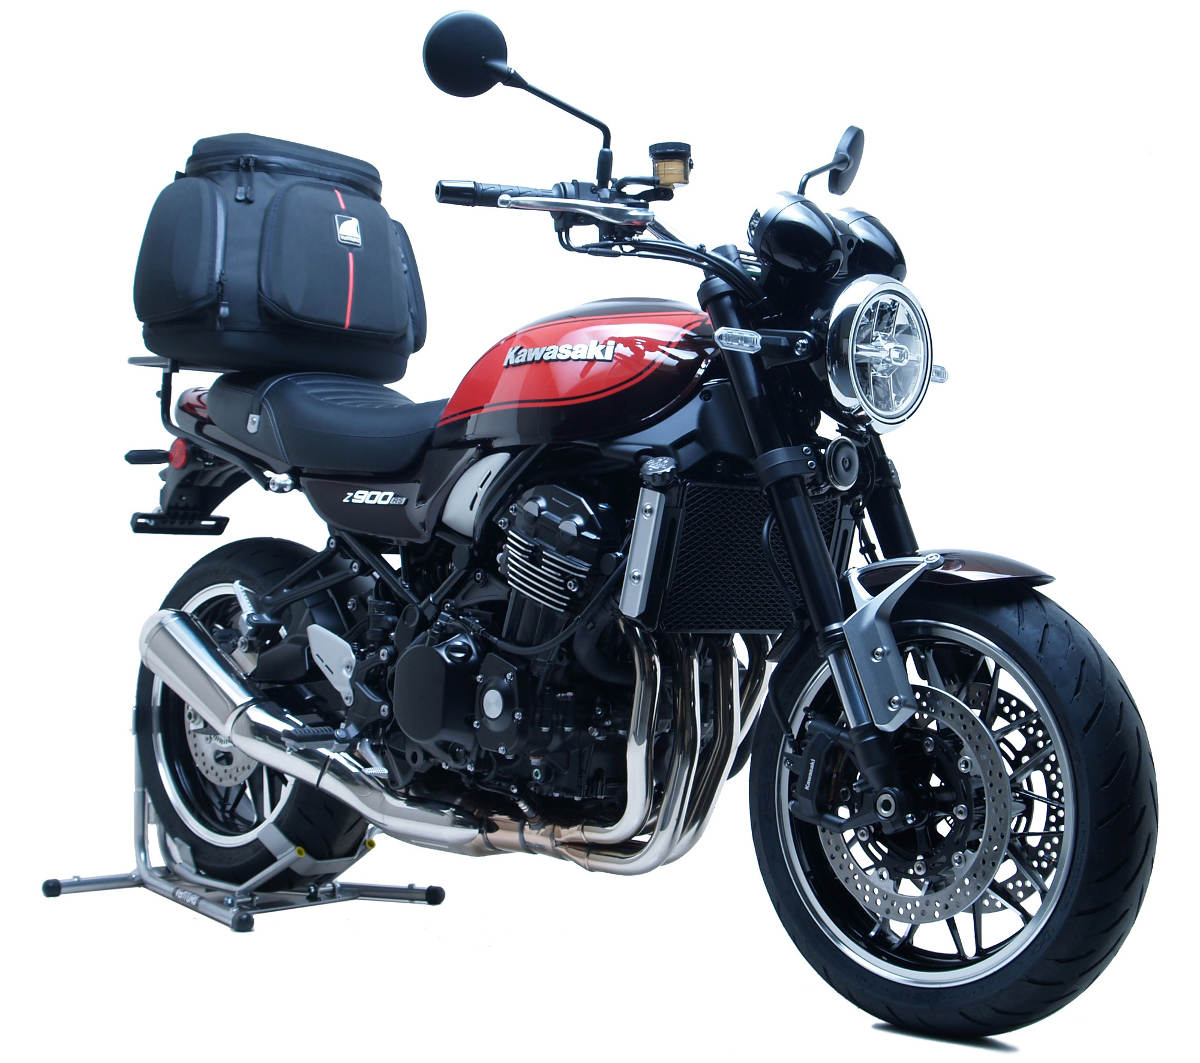 Ventura Luggage Now Fits The 2018 Kawasaki Z900RS